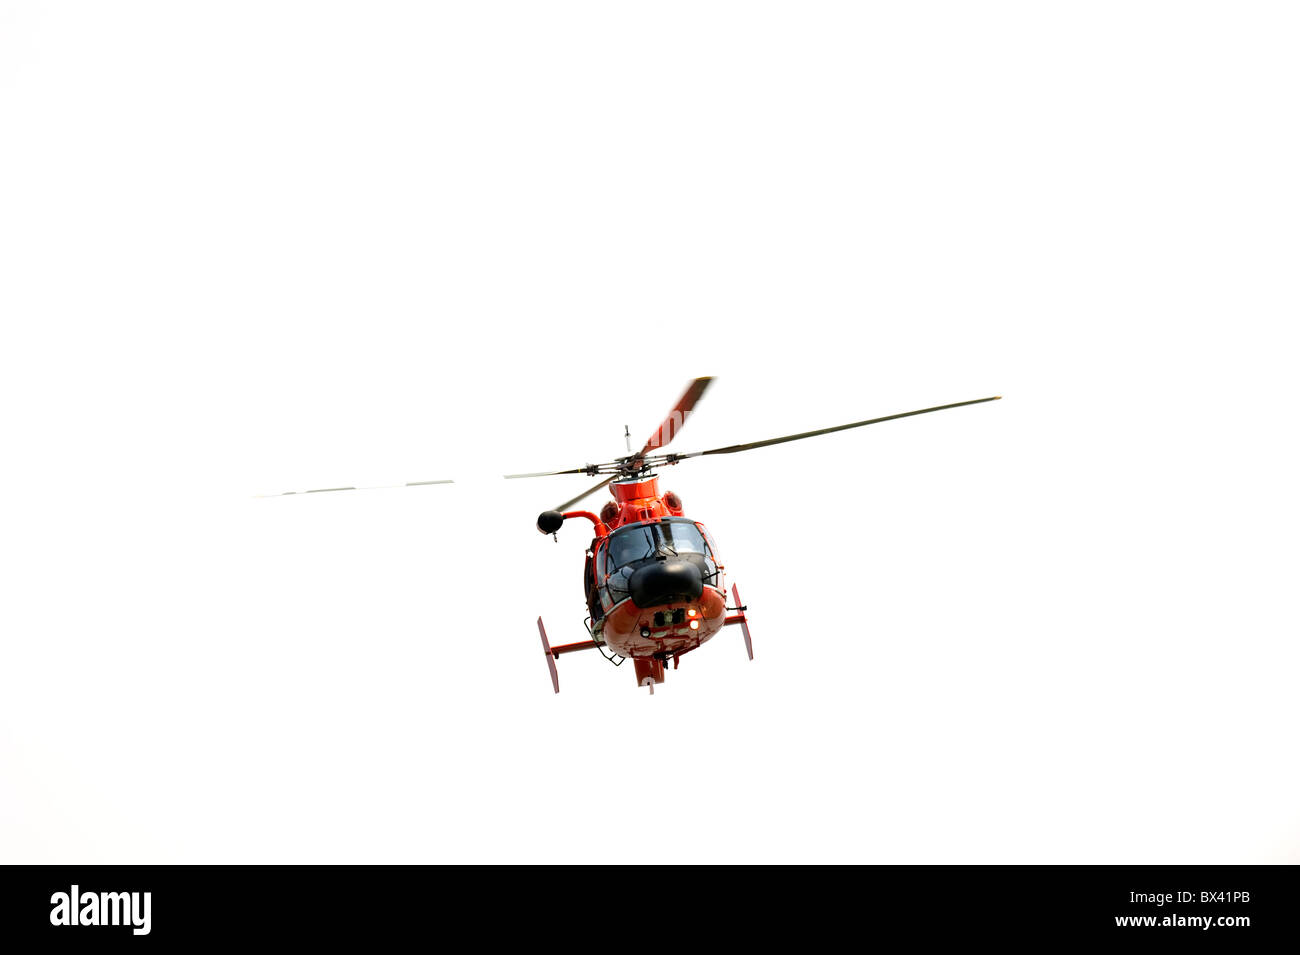 High resolution photograph of a red helicopter isolated on white Stock Photo